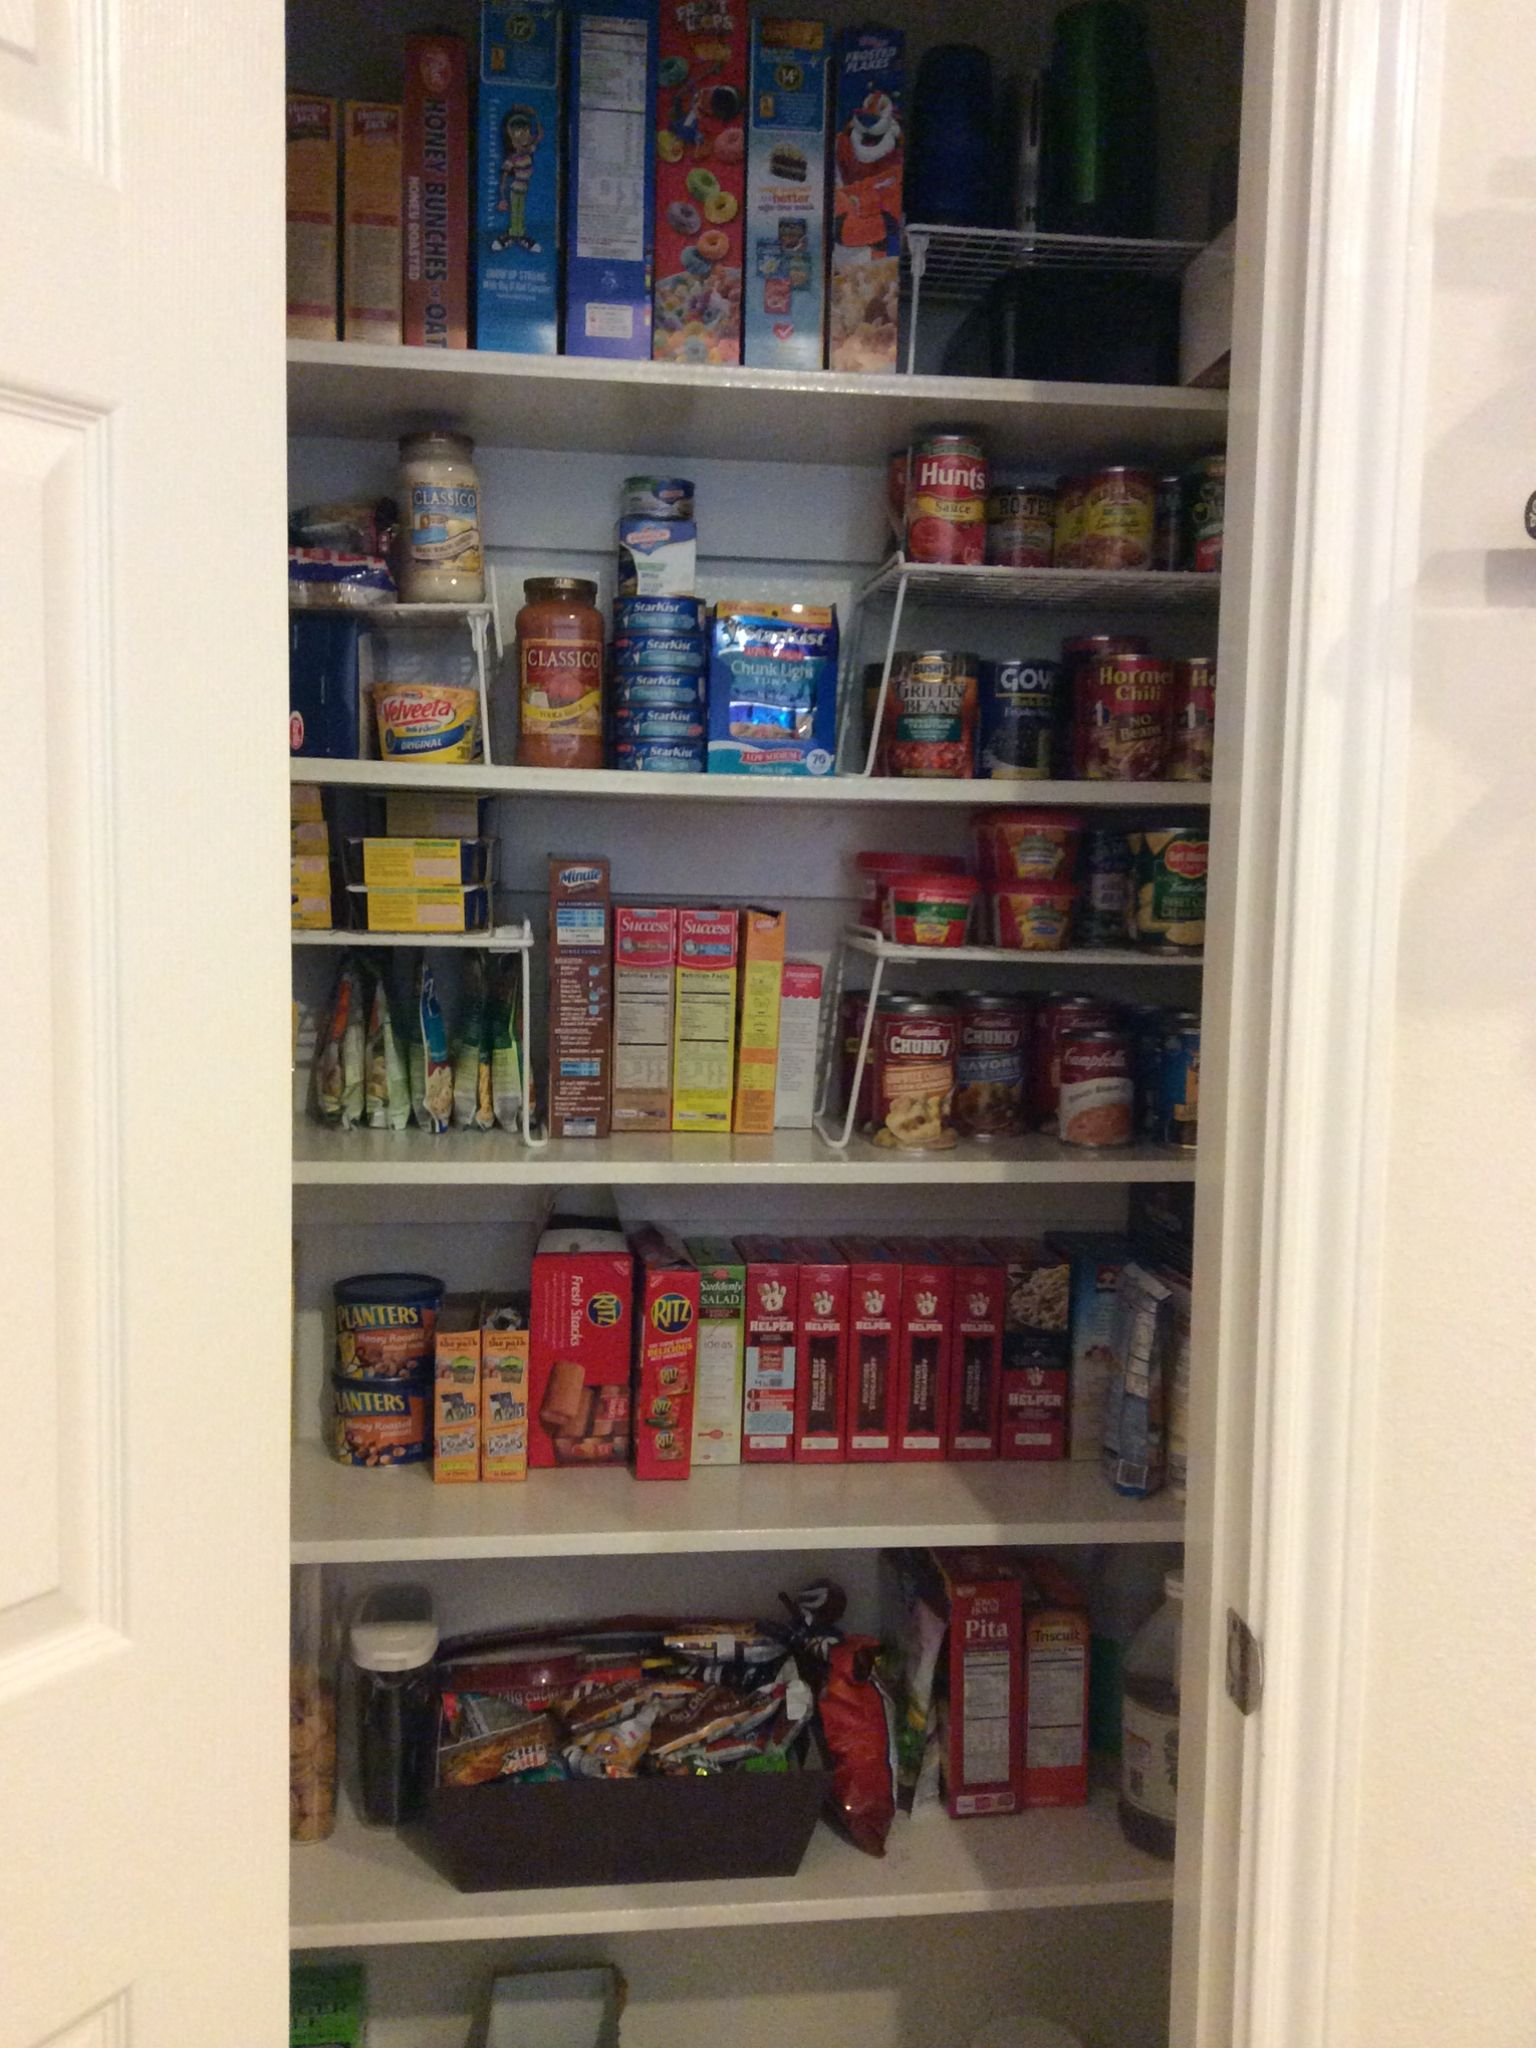 Pin By Annette Acre On Organization Ideas Small Pantry Organization Small Pantry Small Organization